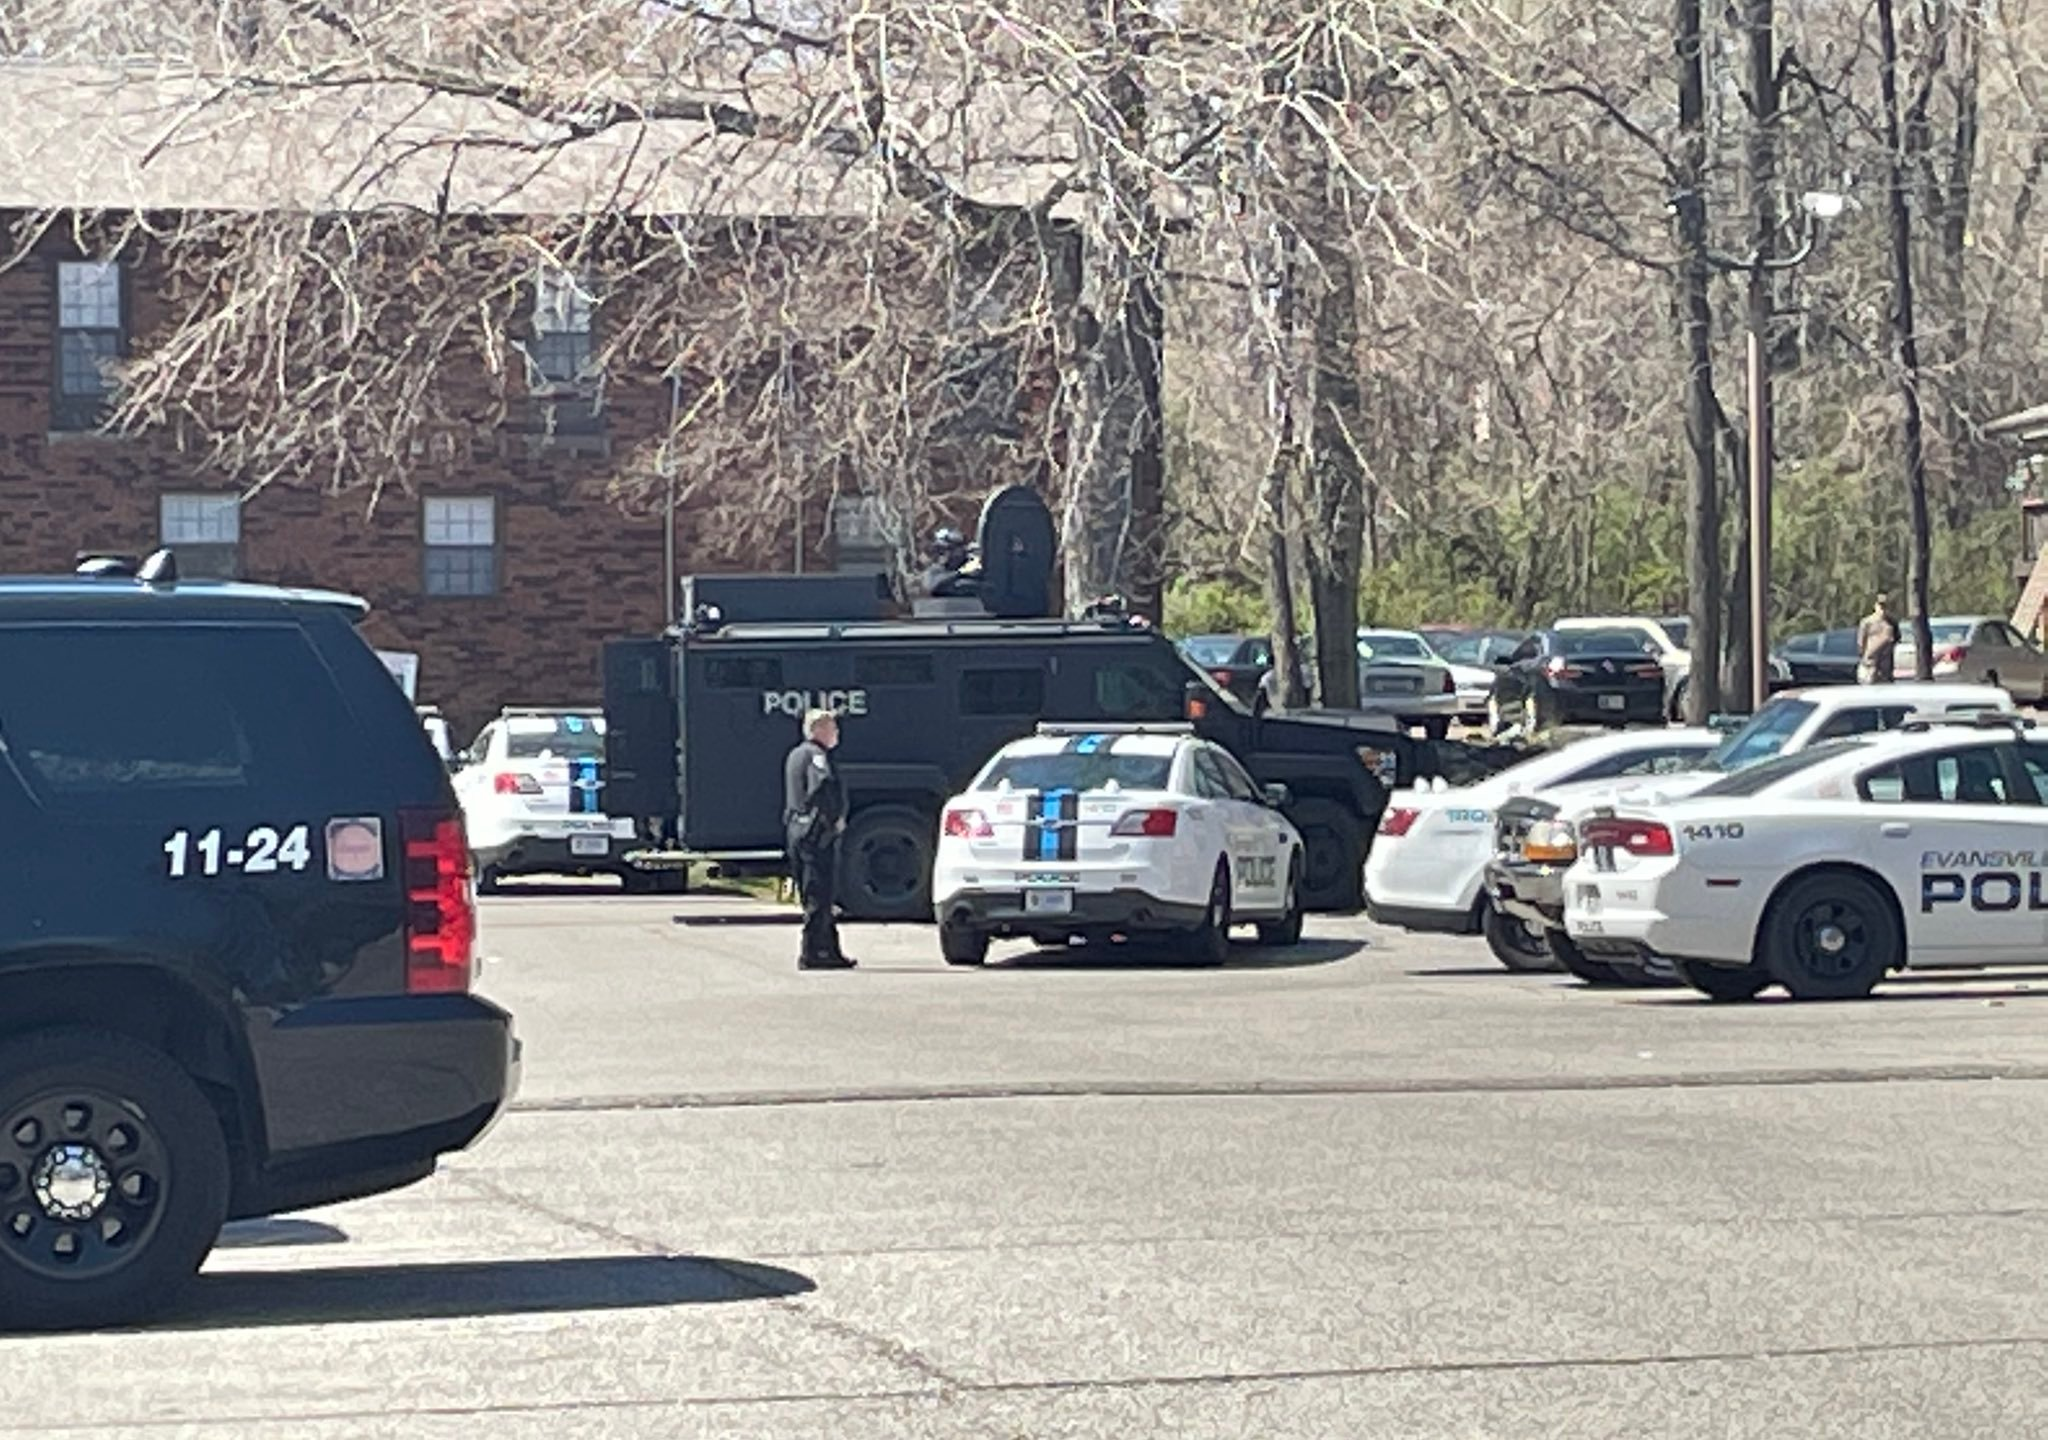 Heavy police presence at Shady Tree Apartments in Evansville